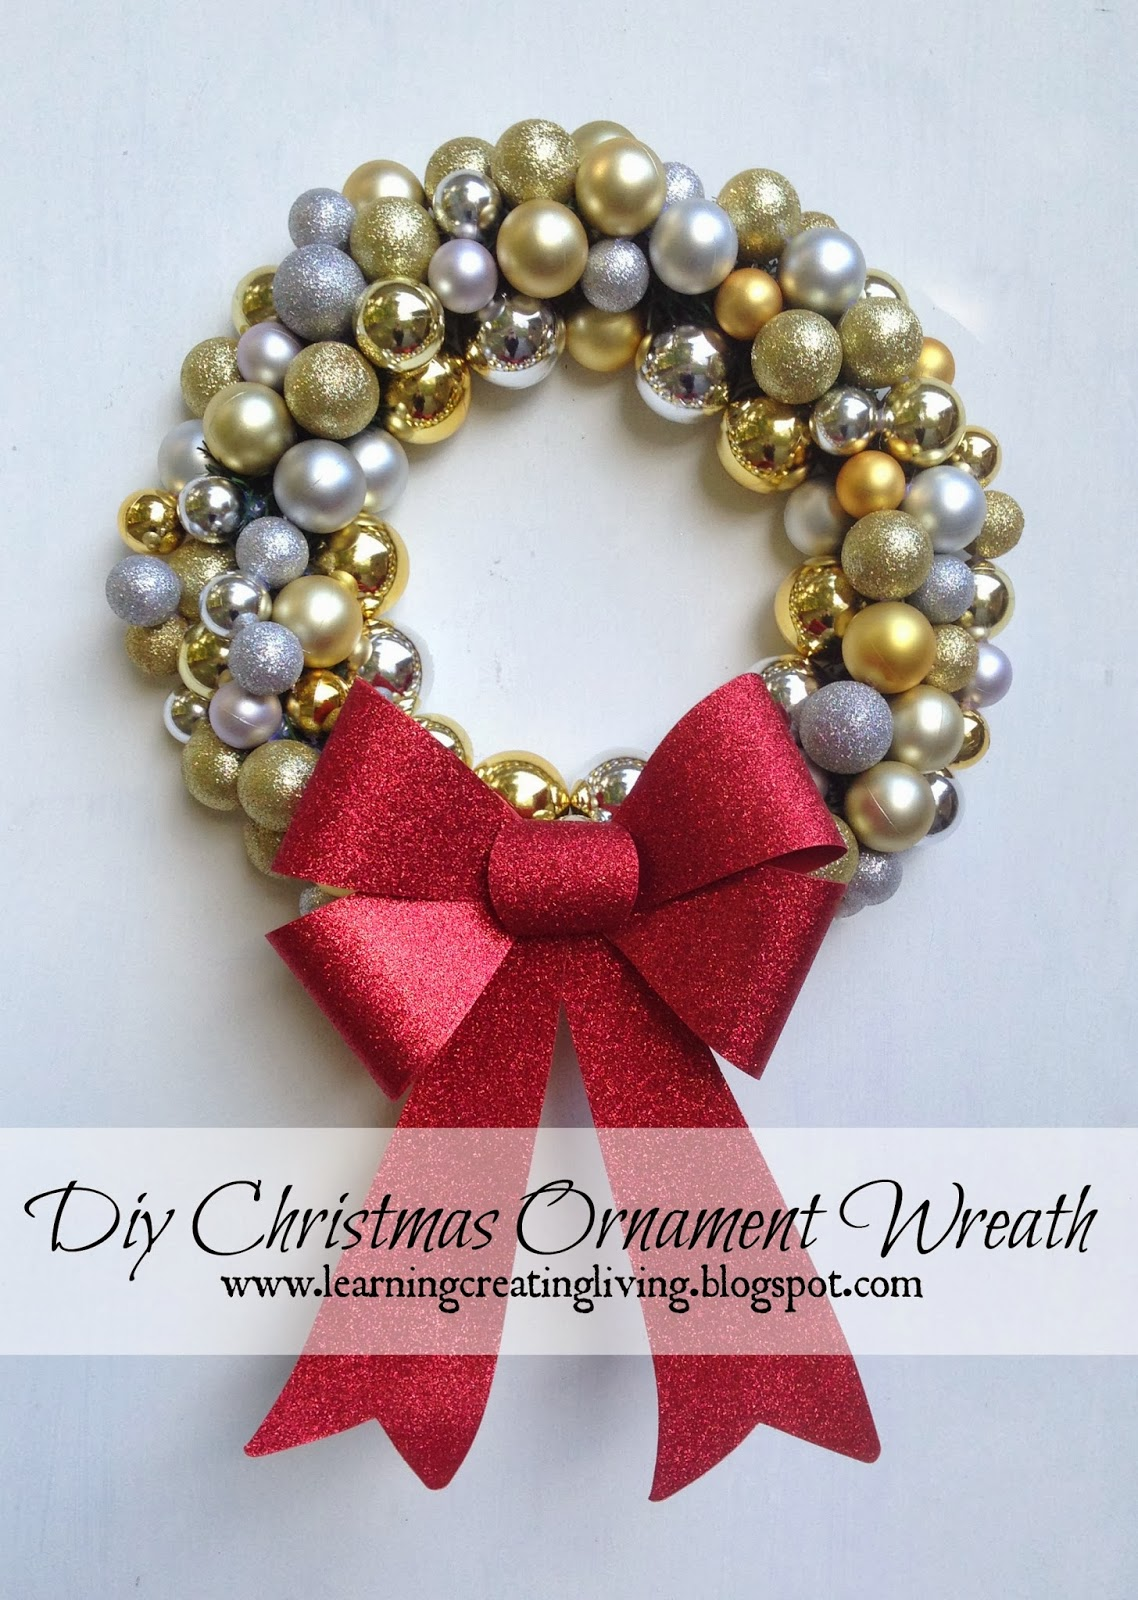 DIY Christmas Ornament Wreath from Learning, Creating, Living